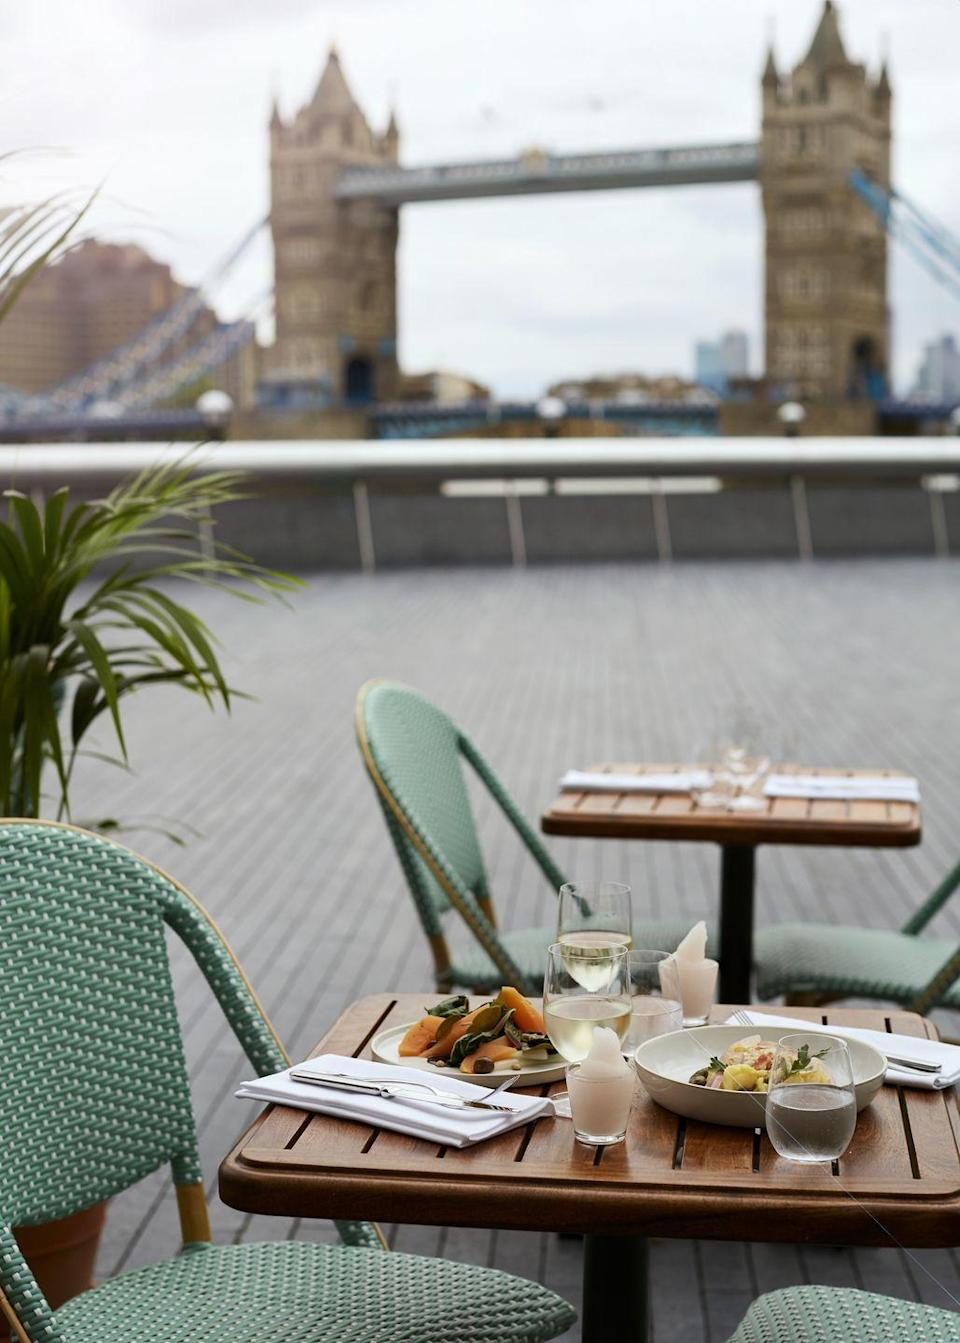 """<p>'Tavolino' means small table in Italian but size doesn't really matter at this new opening in London Bridge – the important thing is the amazing location and the al fresco tables which look out onto the river. </p><p>Not forgetting the pizzas of course, which are made Romagna-style on a crispy sourdough base. Expect finely sourced toppings (the head chef Louis Korovilas who came over from Bancone has put a lot of time into sourcing the finest produce direct from Italy) of Puglian burrata, 'nduja from Spilinga, black Taggiasca olives and Gorgonzola Riserva. </p><p>You'll want to go back to try the entire menu.</p><p>Address: 2 More London Riverside, SE1 2DB.</p><p>Click <a href=""""https://www.tavolino.co.uk/"""" rel=""""nofollow noopener"""" target=""""_blank"""" data-ylk=""""slk:here"""" class=""""link rapid-noclick-resp"""">here</a> for more information.</p>"""